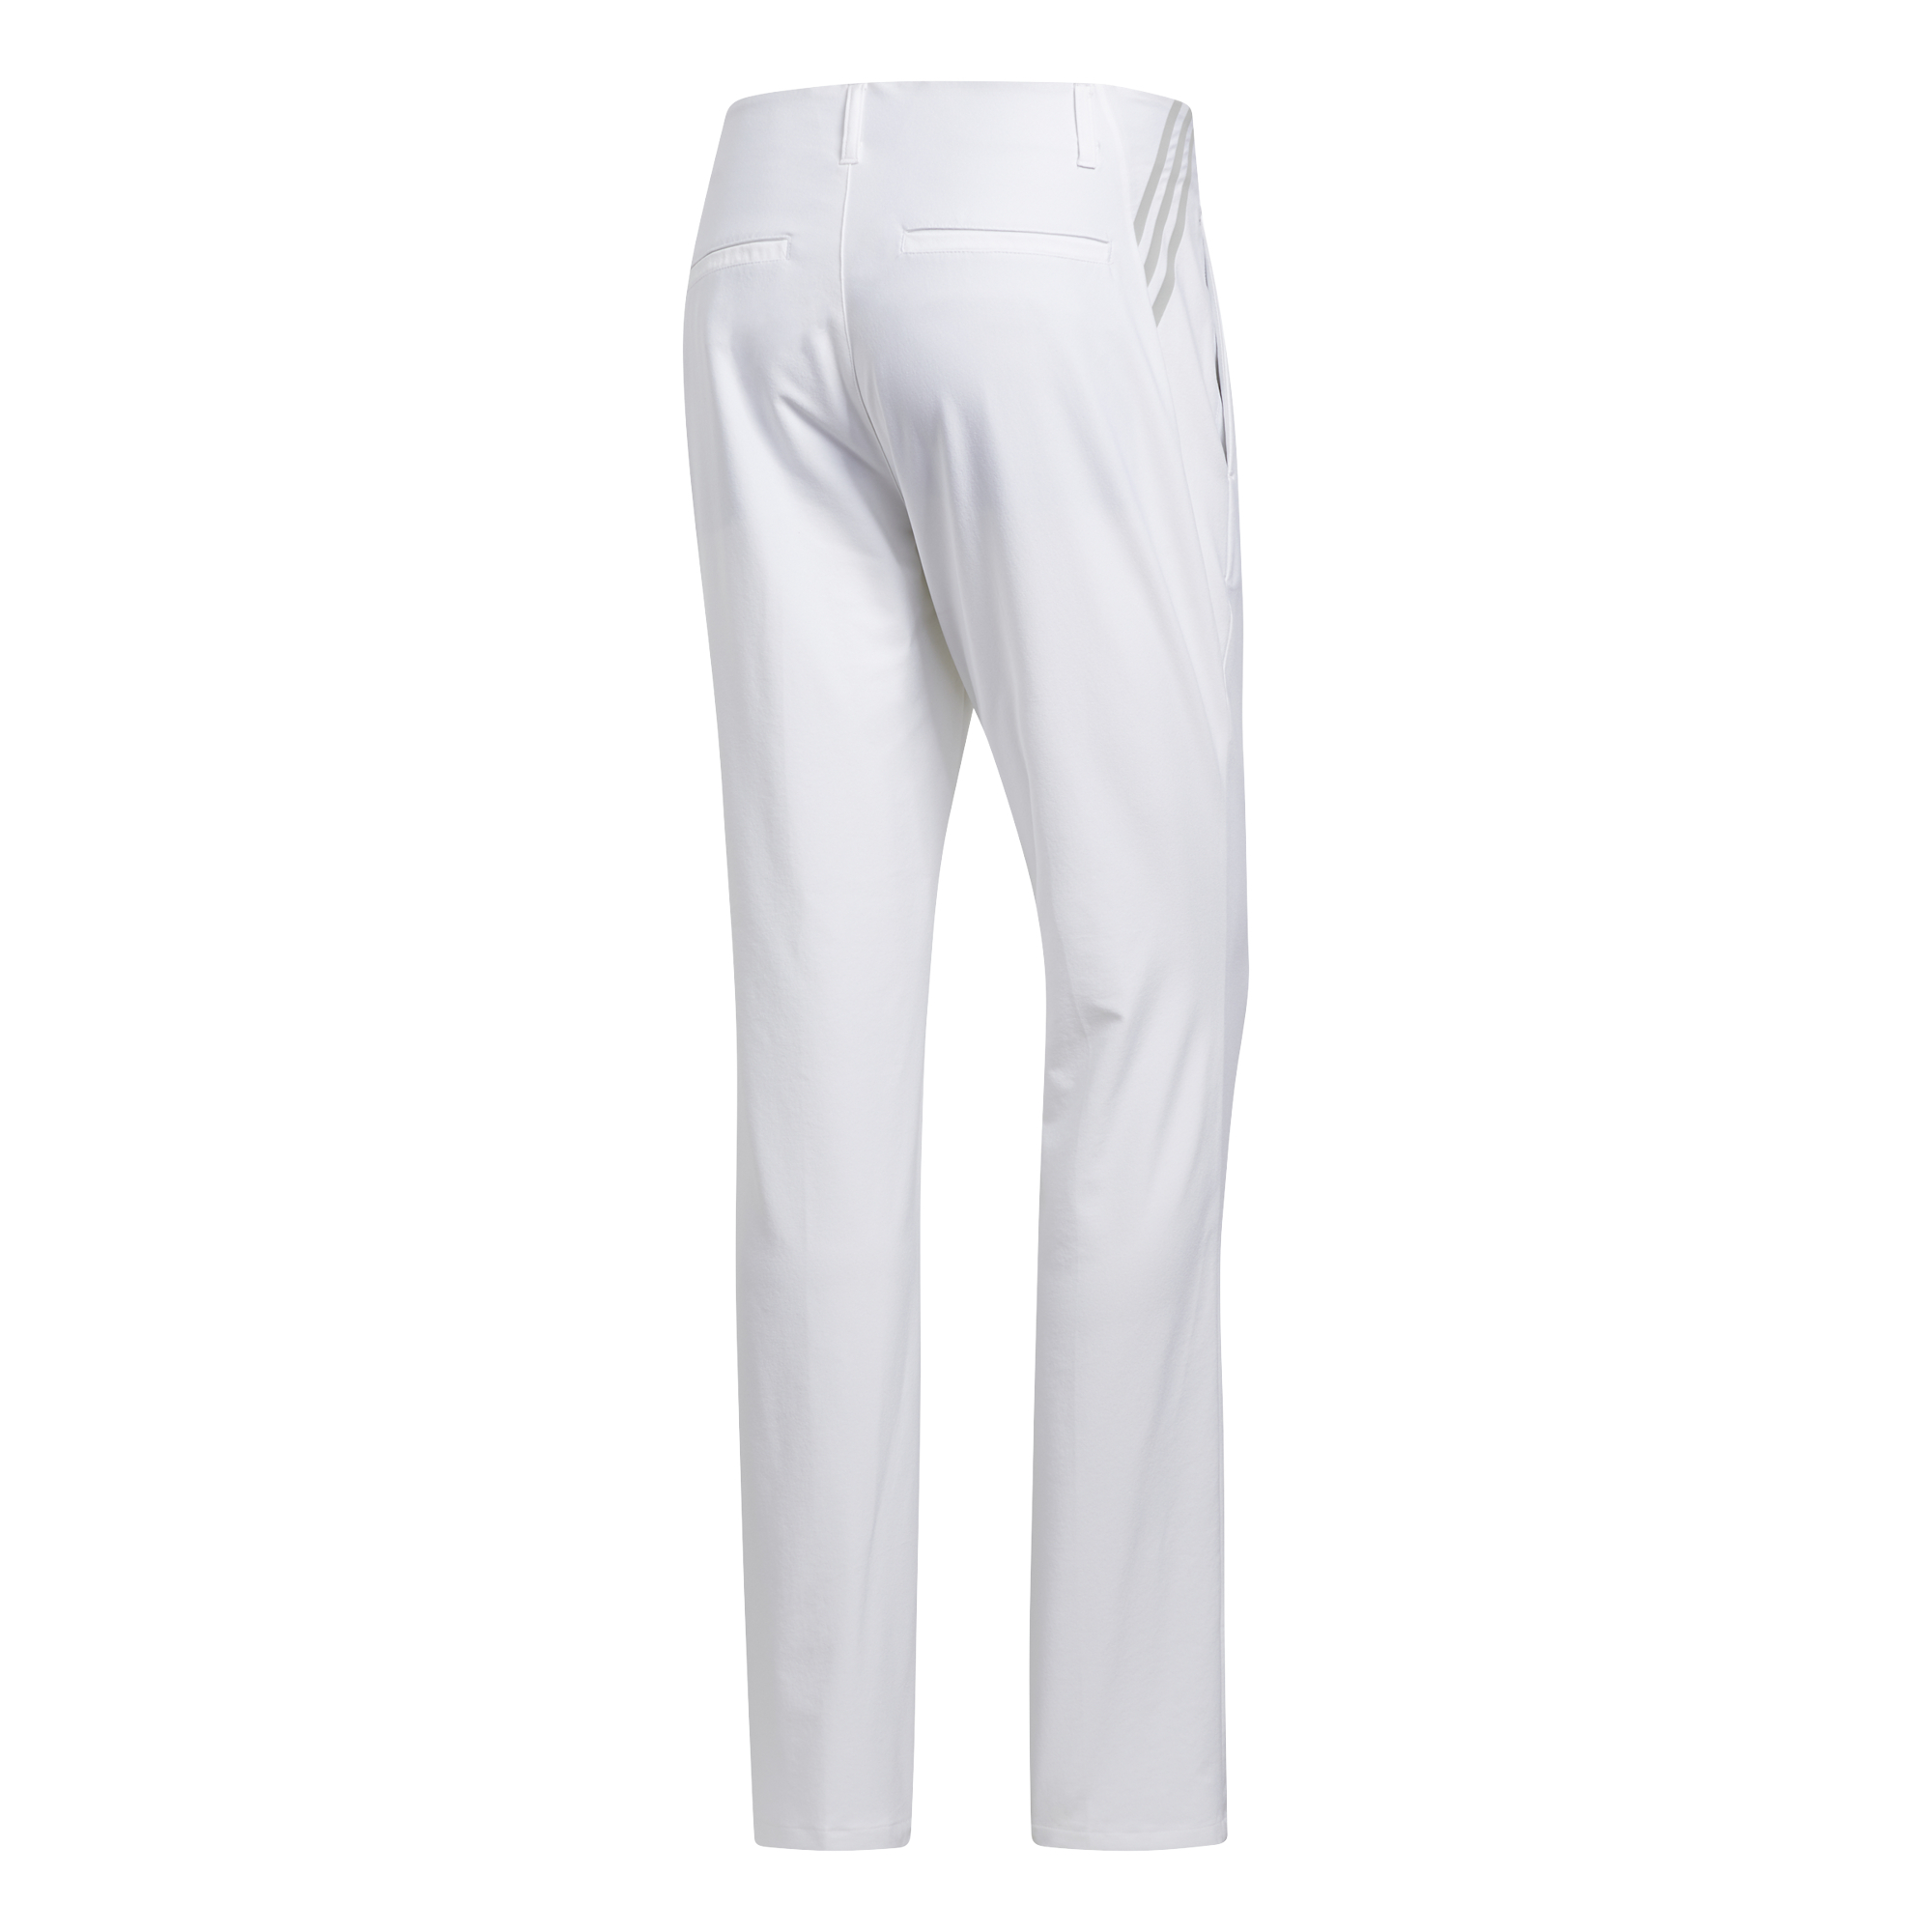 adidas Ultimate 365 3-Stripes Tapered Mens Golf Trousers  - White